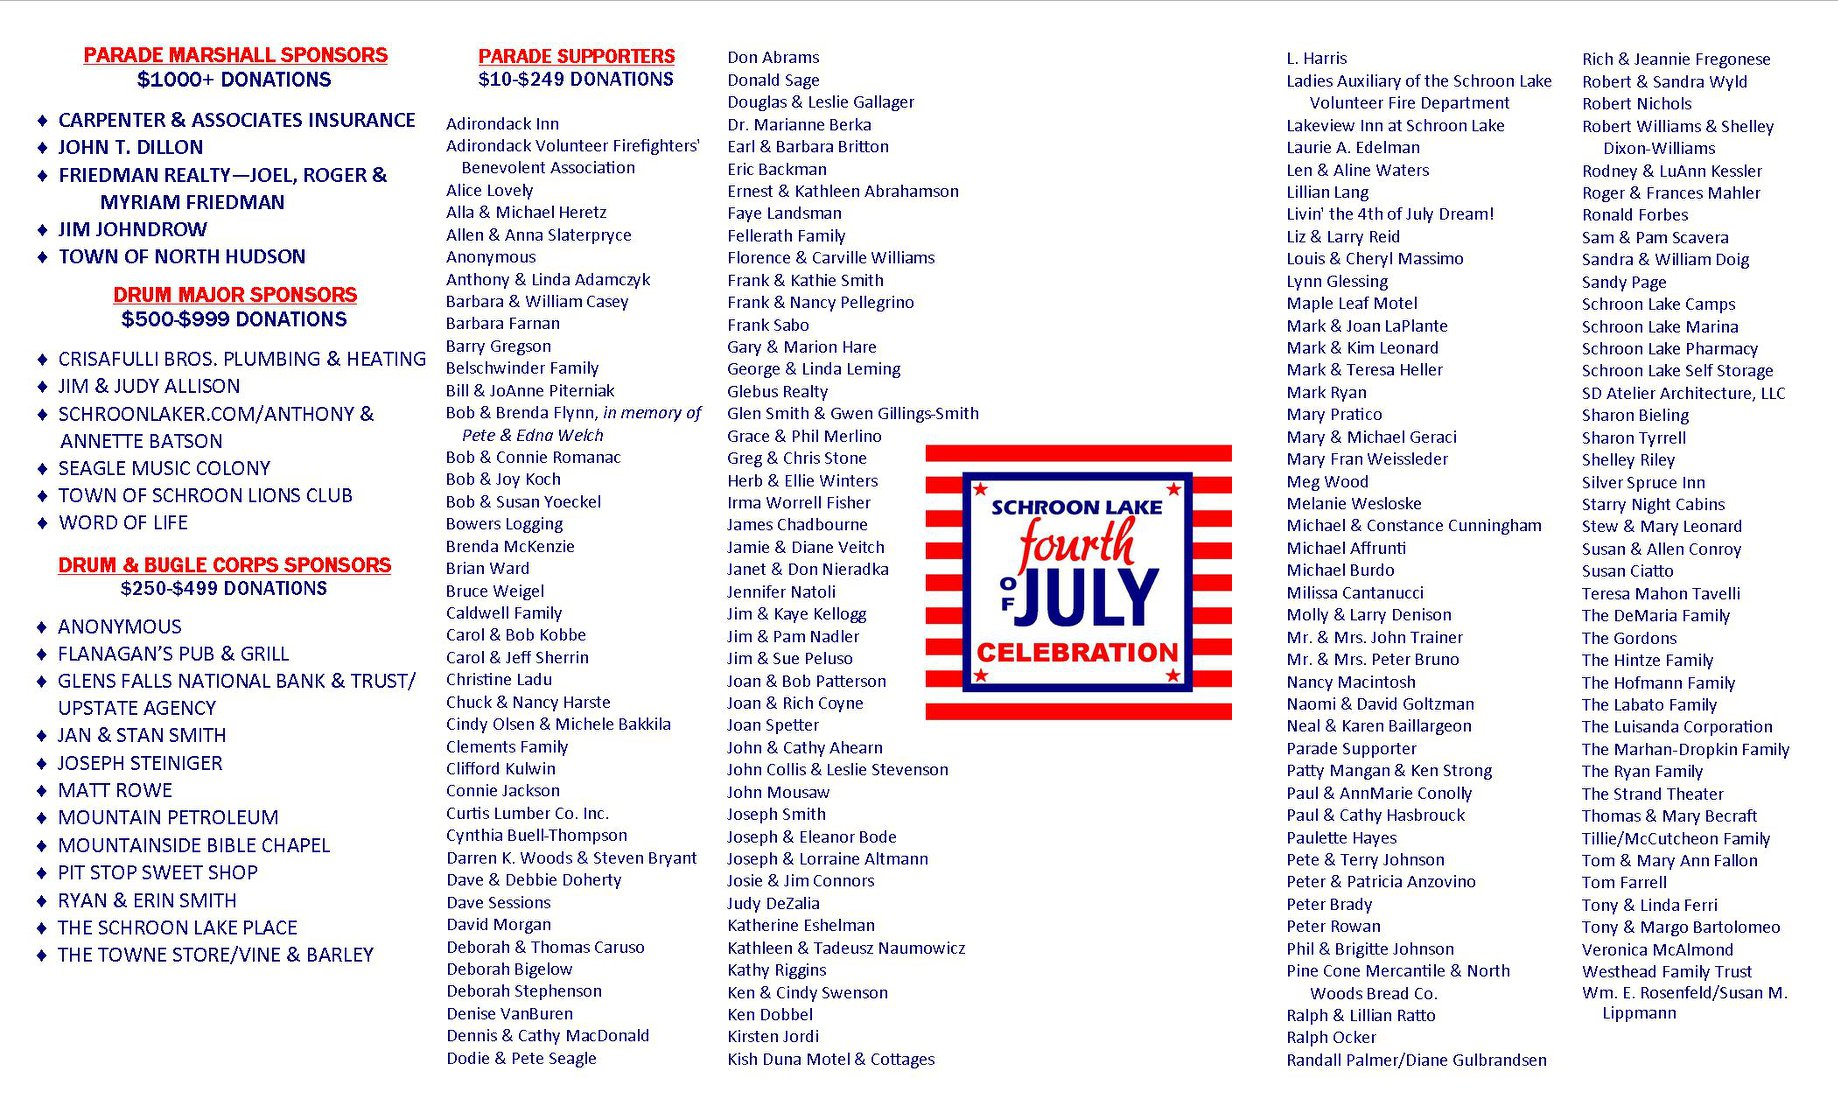 July4thcelebrationdonors.jpg